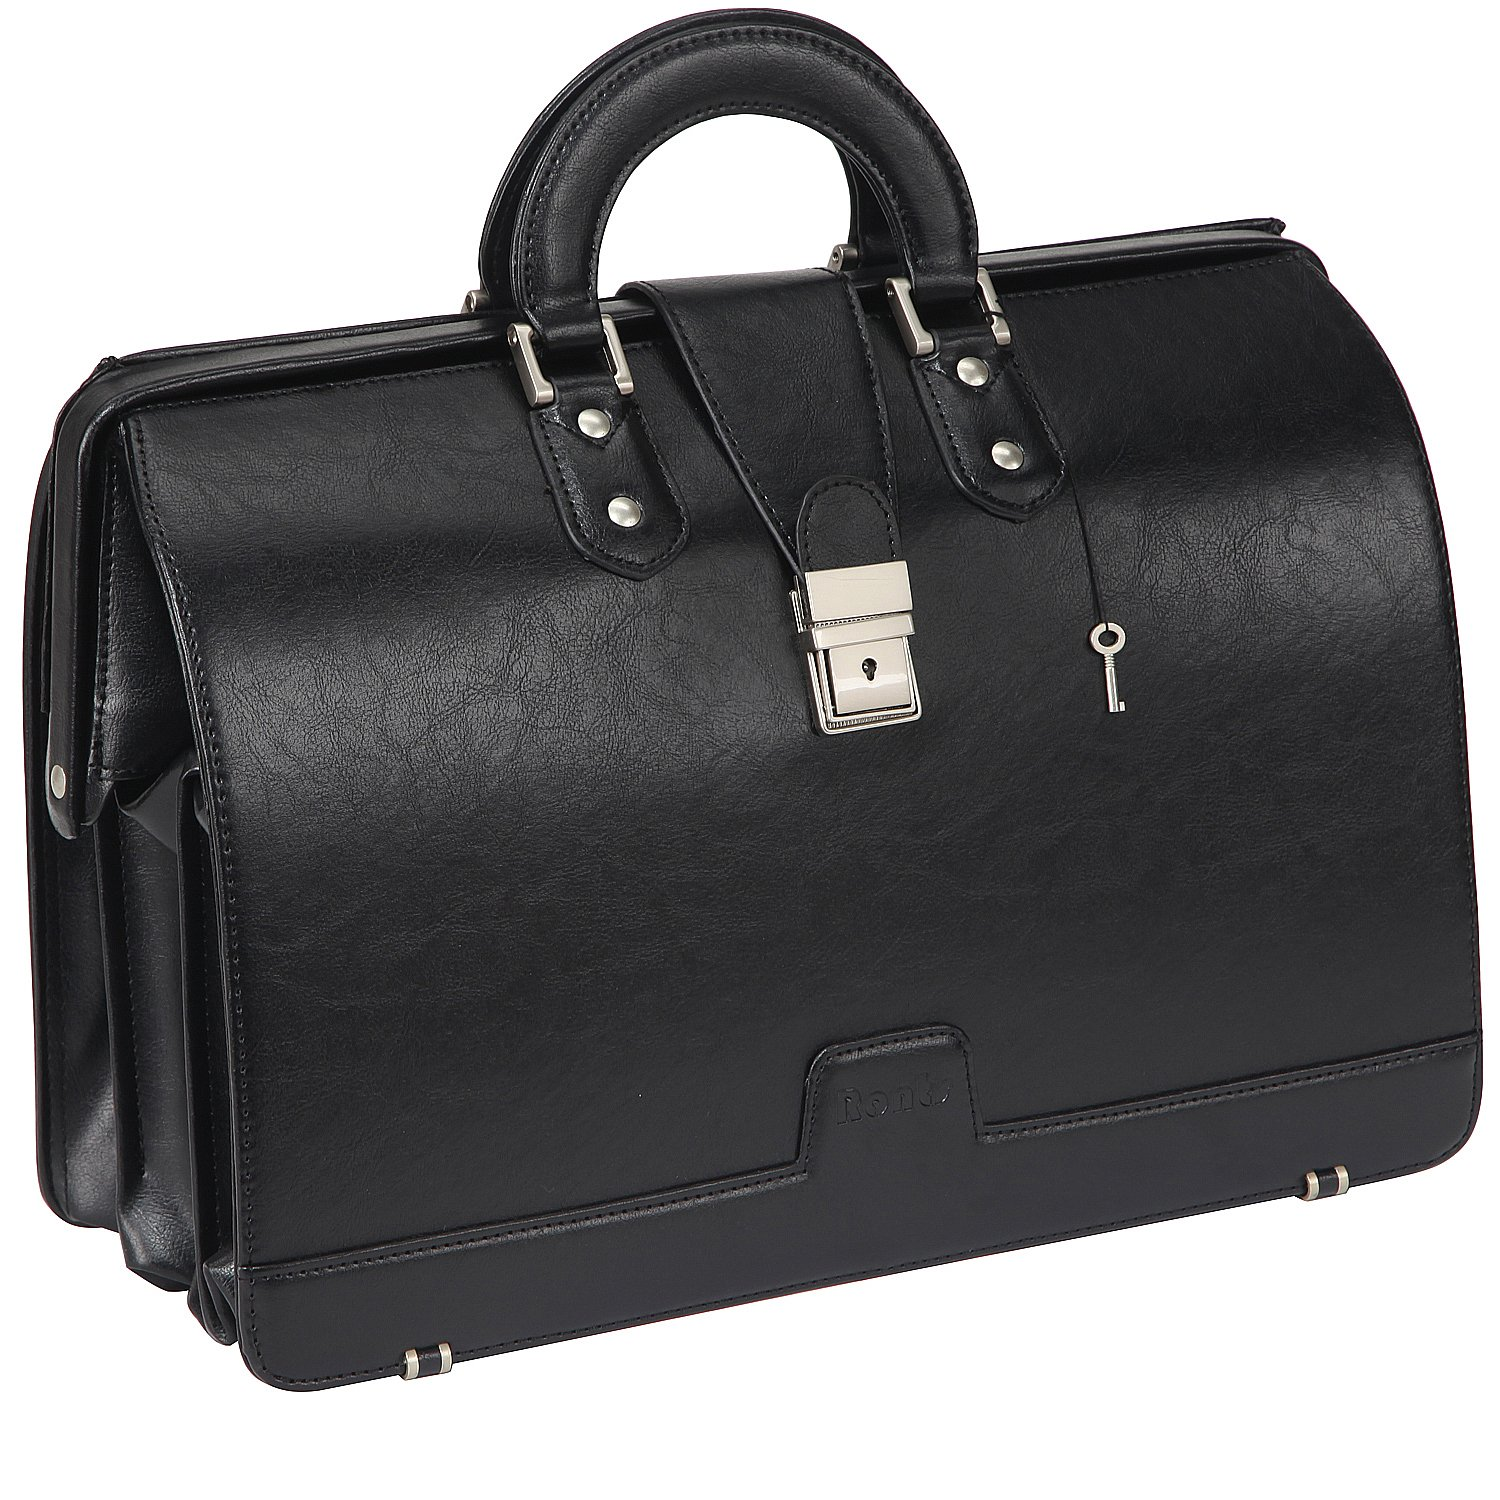 Ronts Mens PU Leather Briefcase Lawyer Attache Case with Lock 15.6 Inch Laptop Business Bag, Black